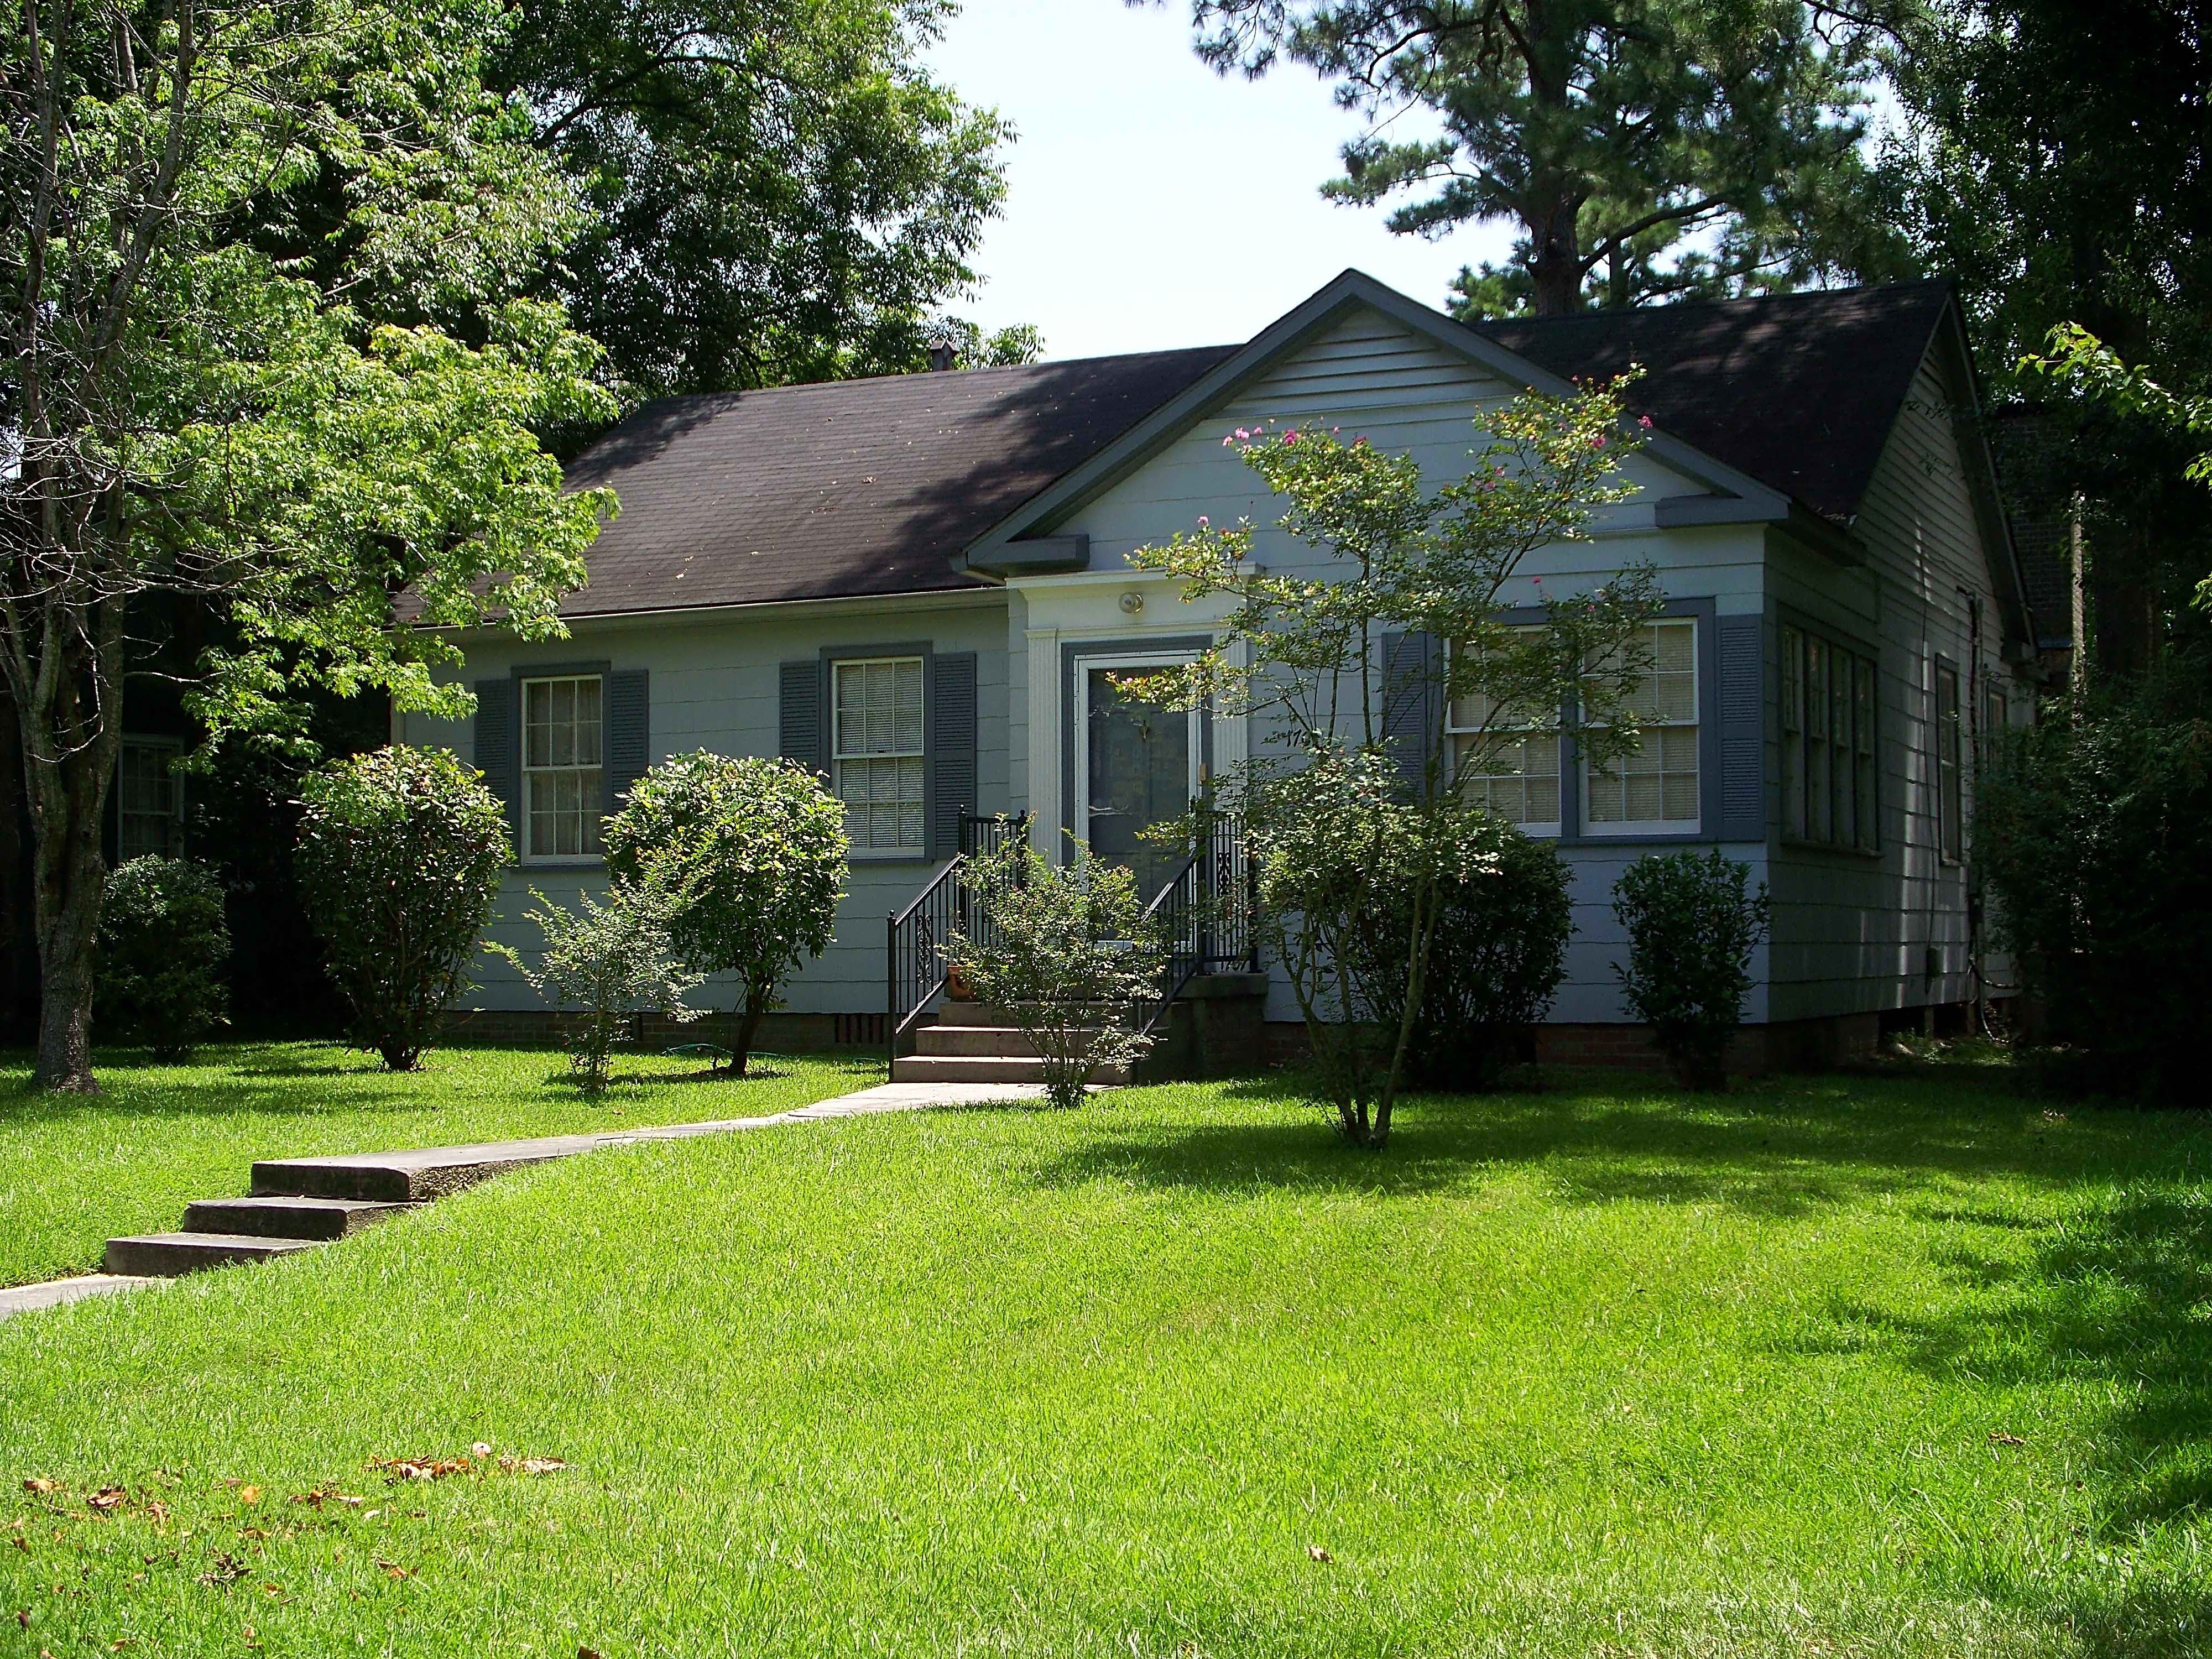 Baton Rouge Houses For Rent Apartments In Baton Rouge Louisiana Rental Properties Homes